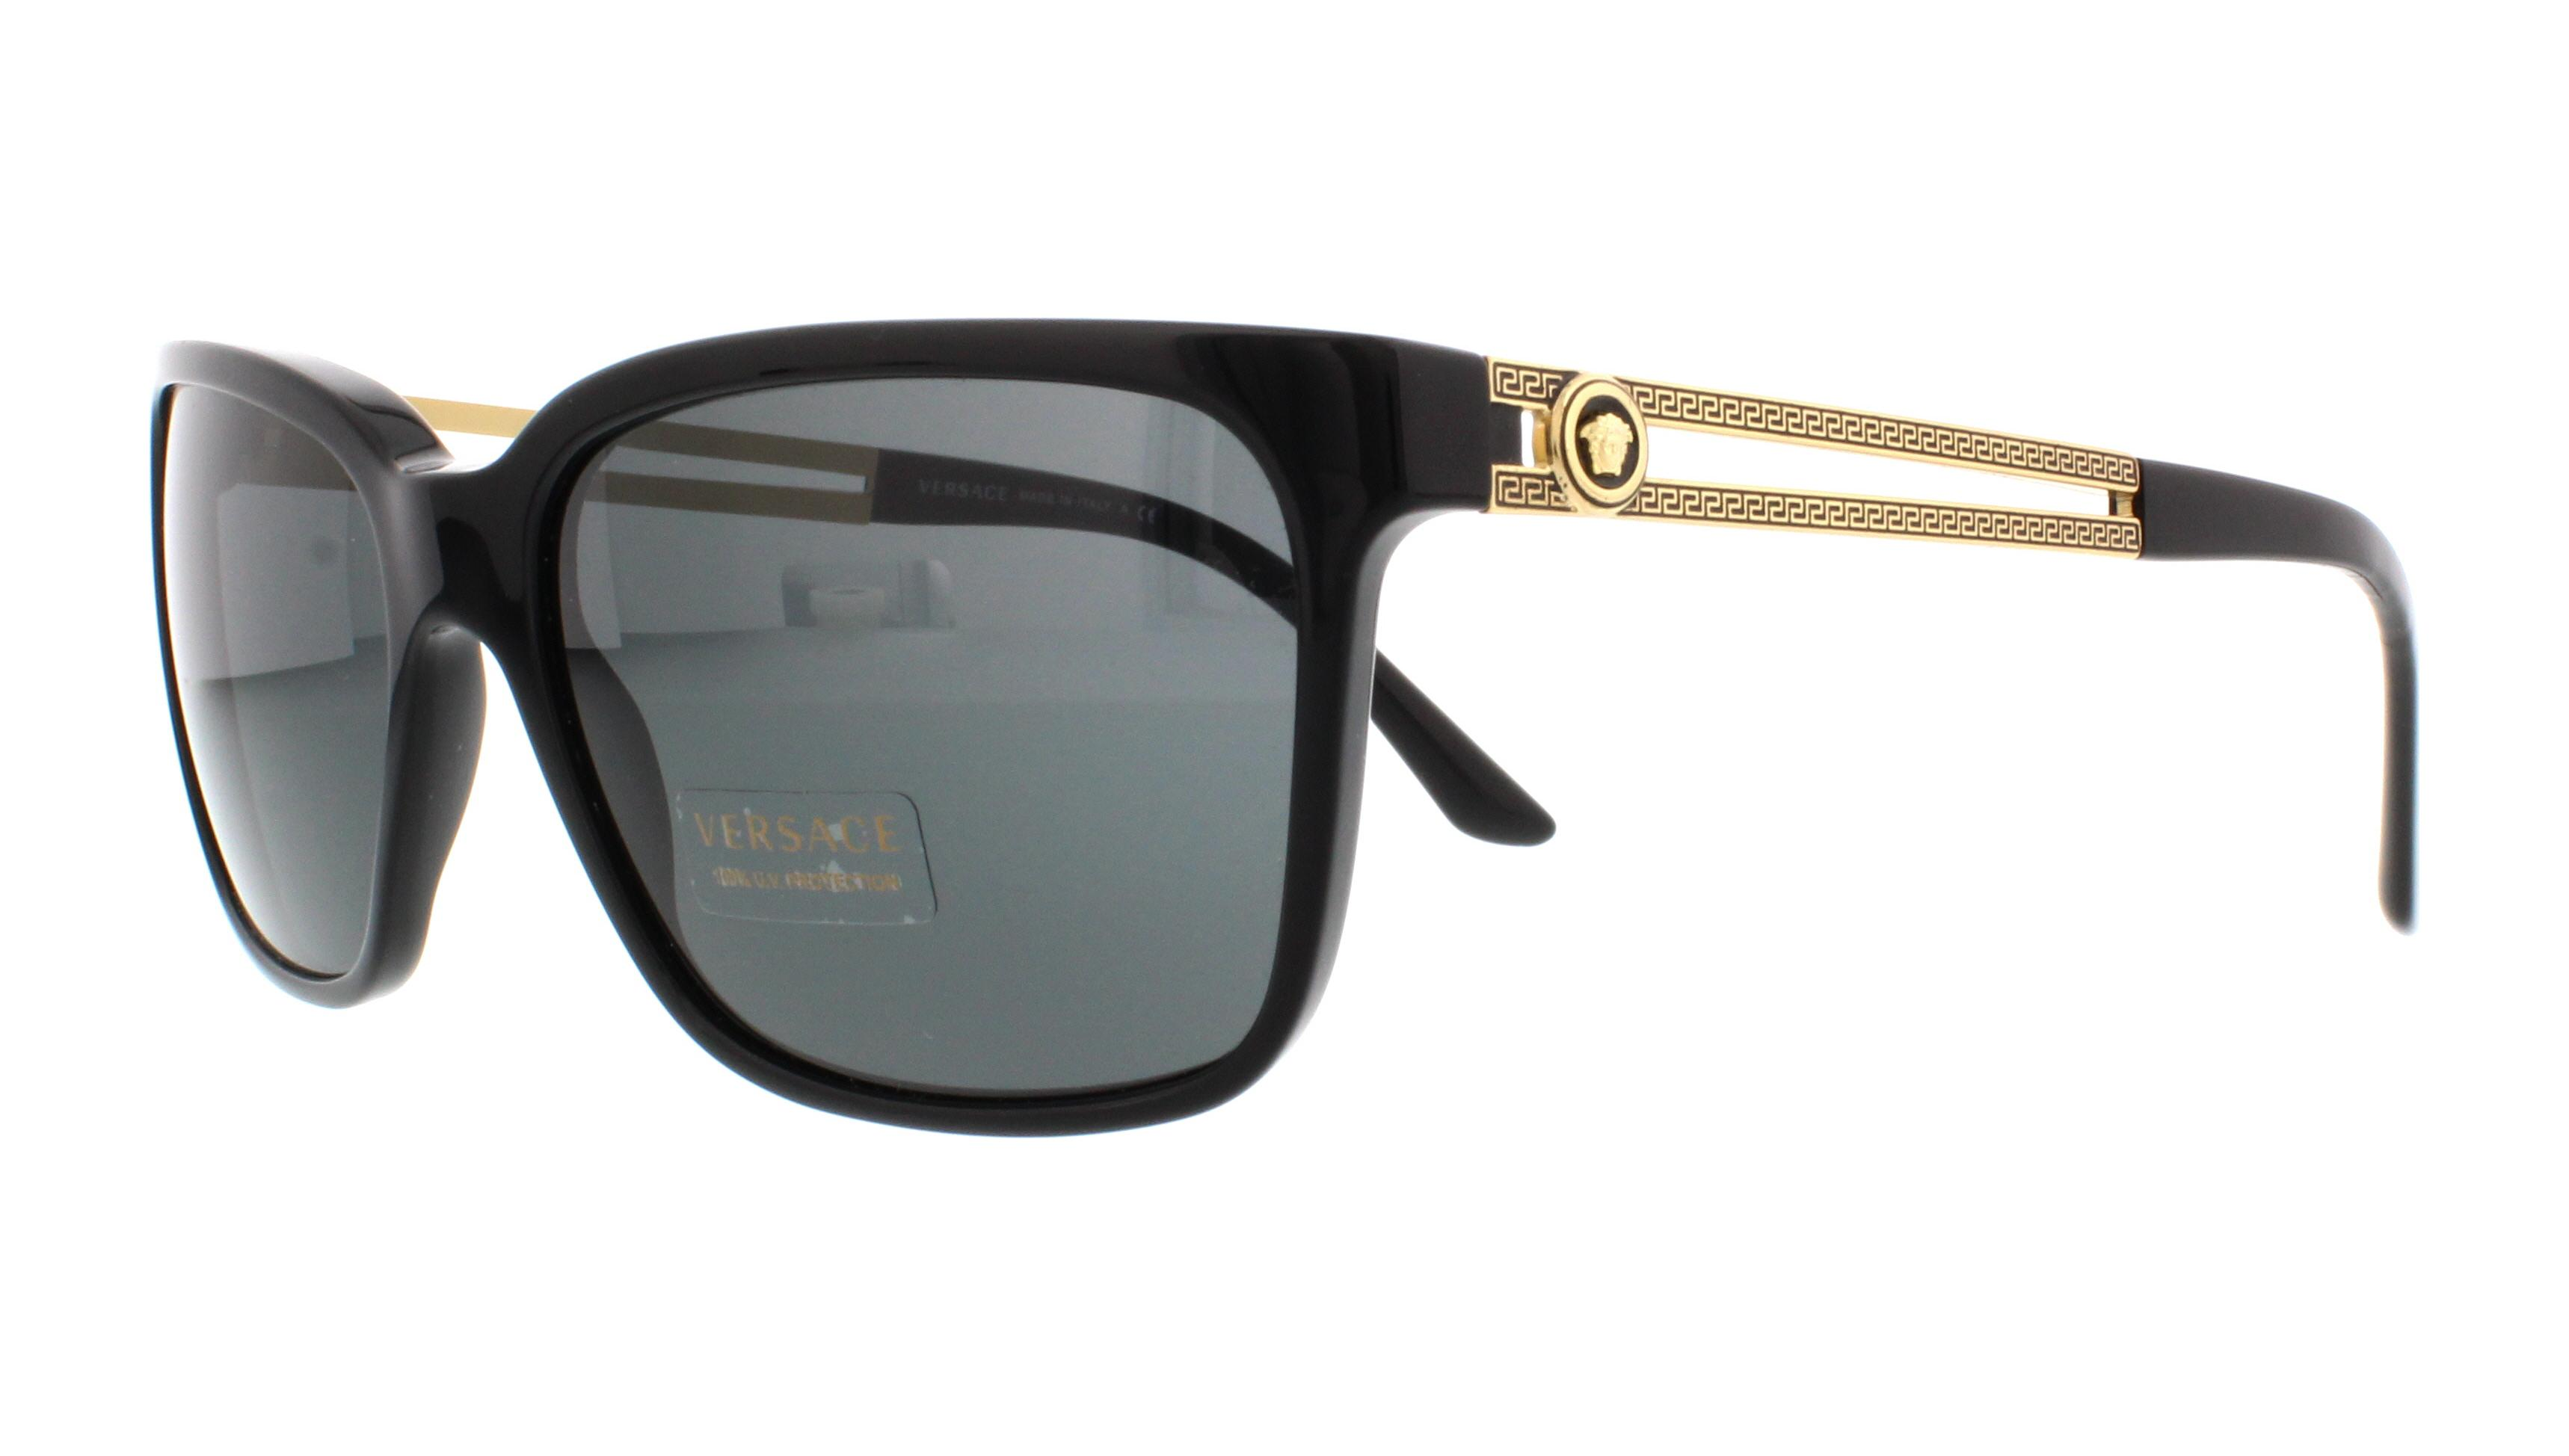 9d3fd883b0 VERSACE Sunglasses VE4307 GB1 87 Black 58MM 8053672469950